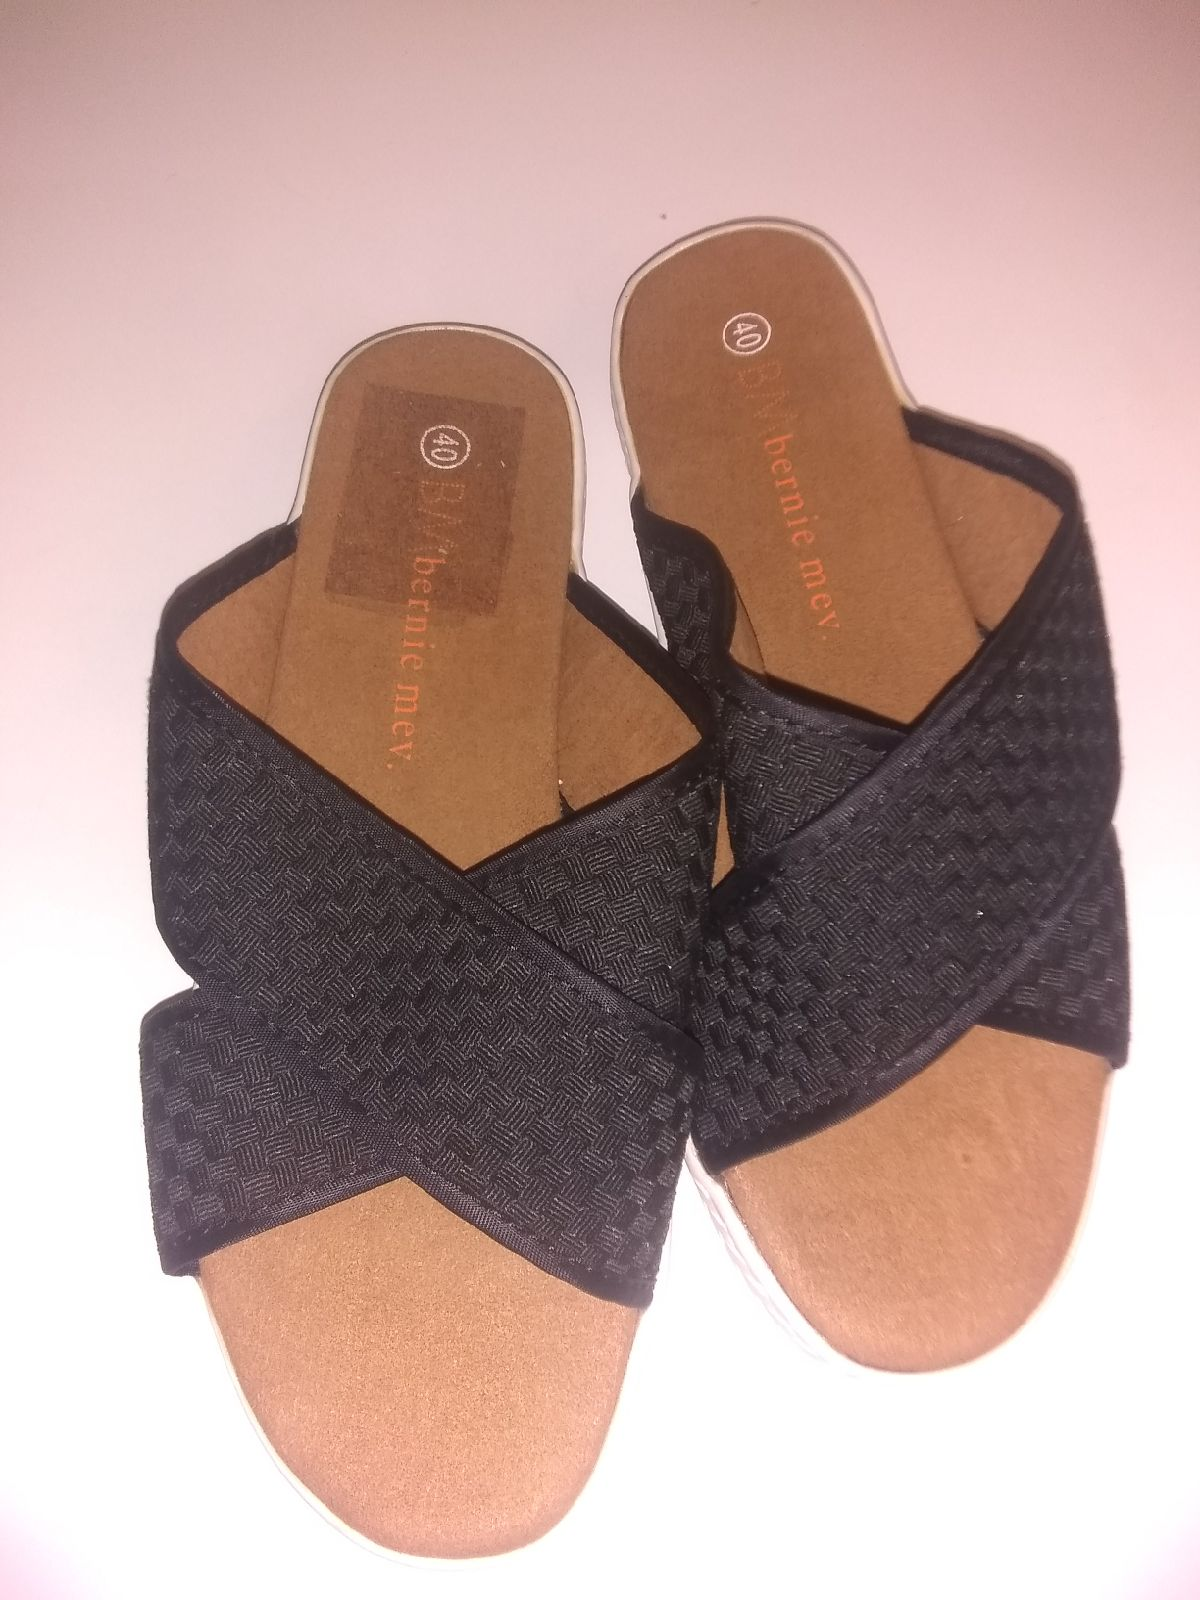 Bernie Mev Criss Cross Sandals 9.5